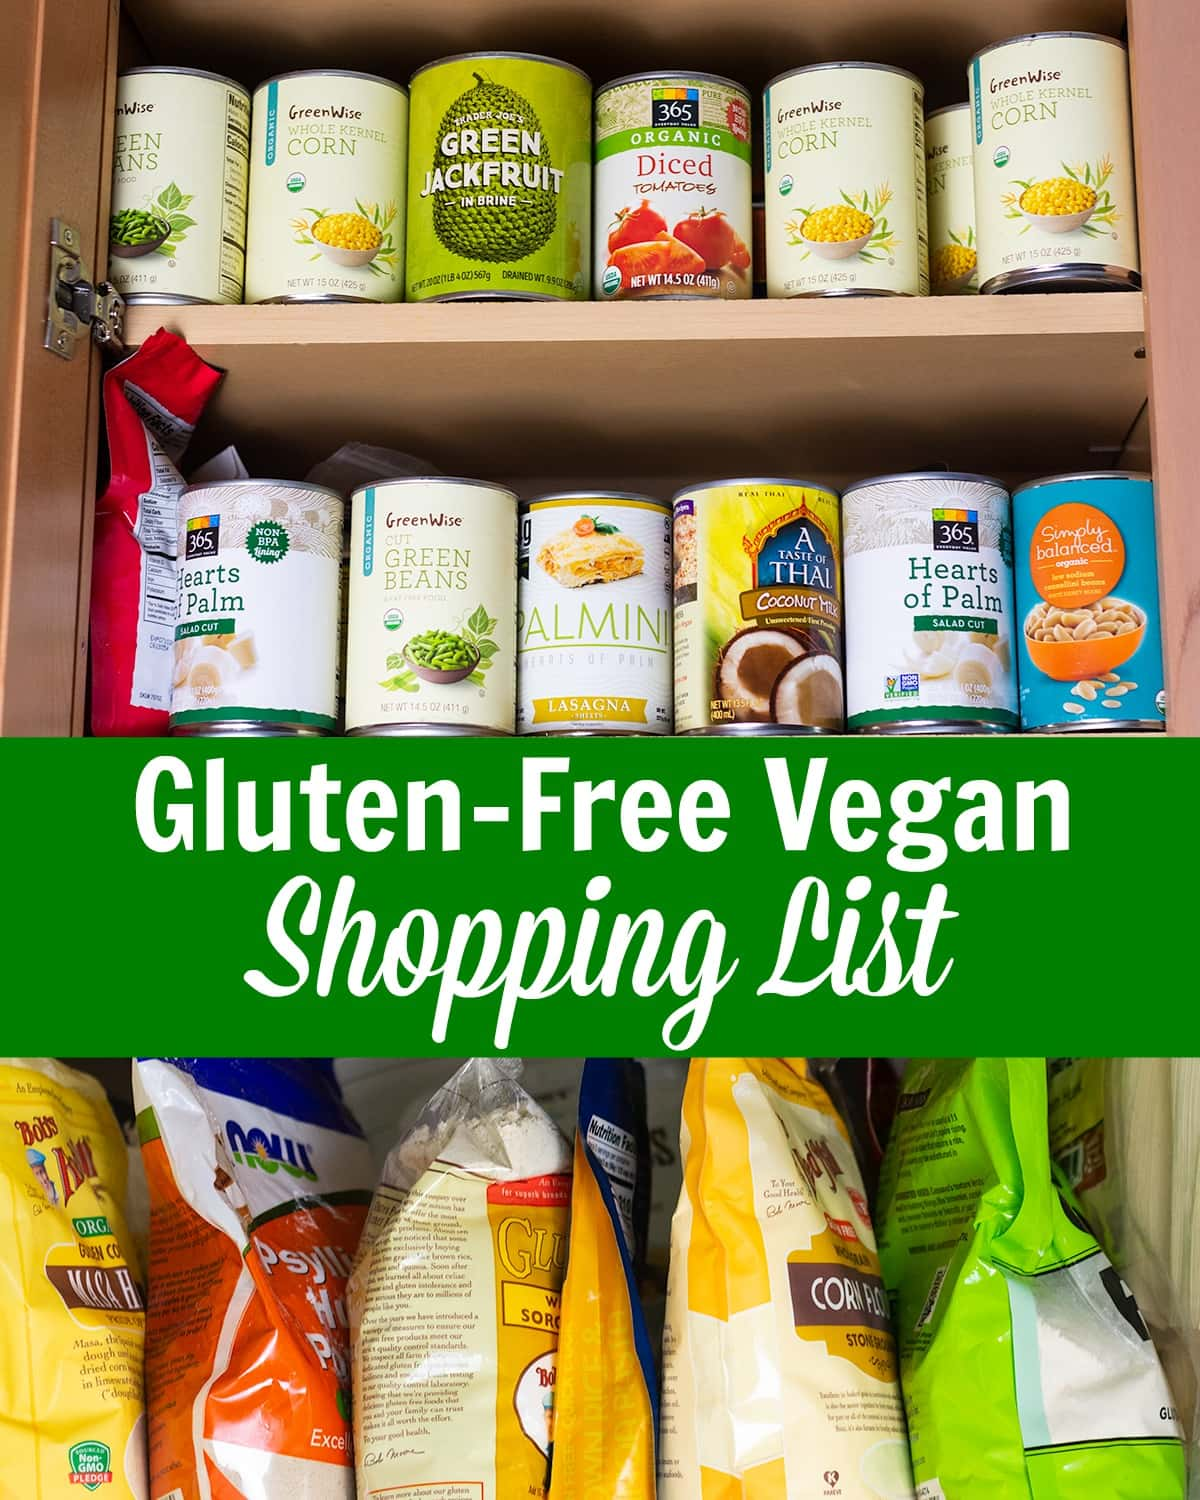 Gluten-Free Vegan Shopping List